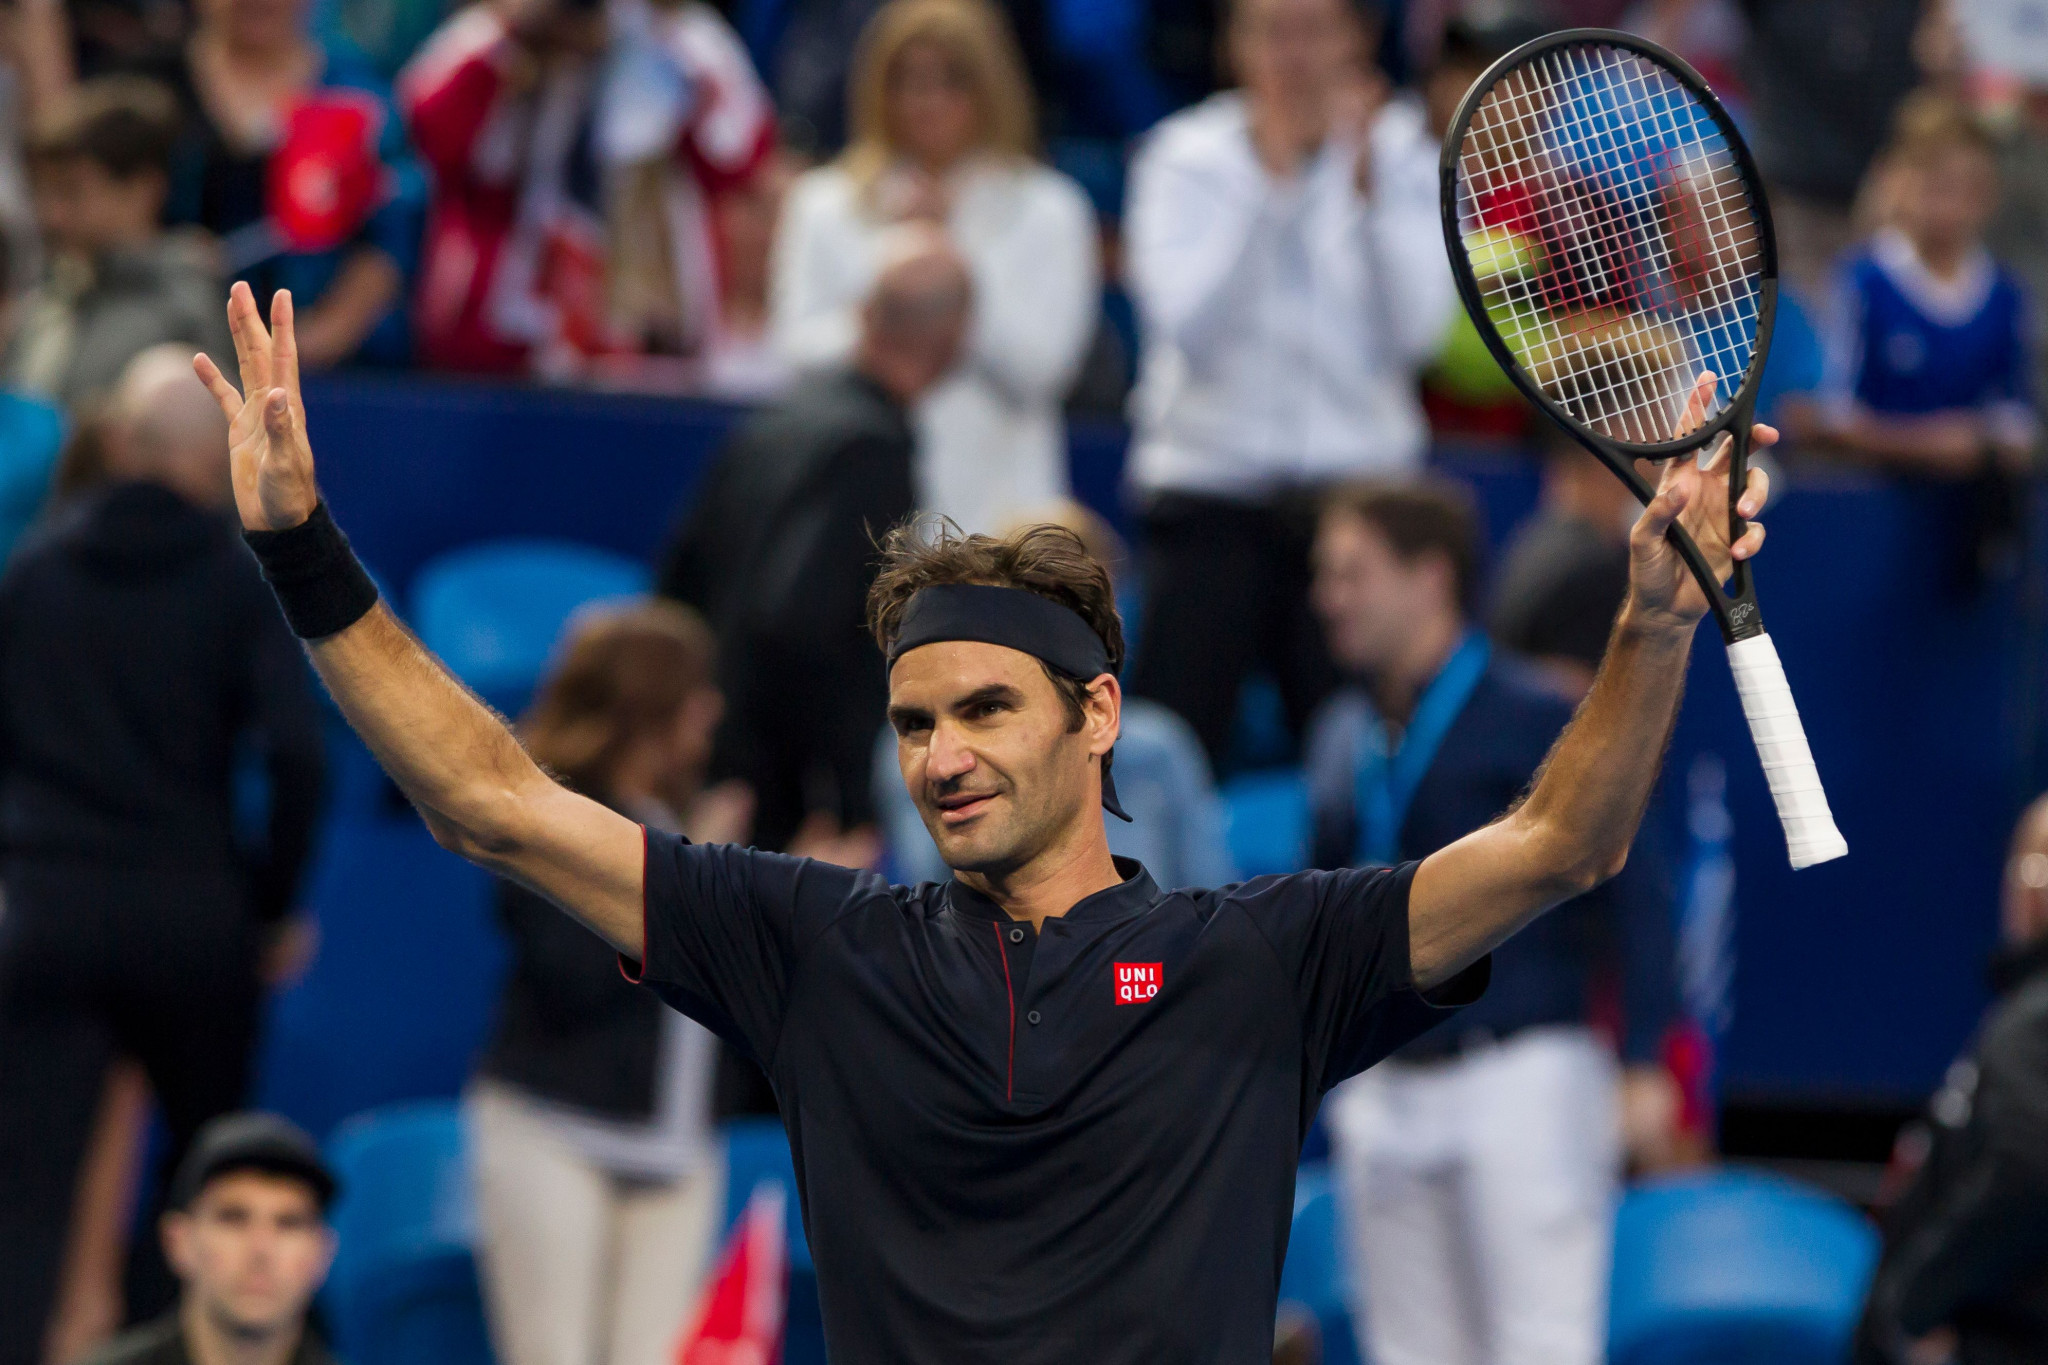 Switzerland progress to final of Hopman Cup despite losing to Greece